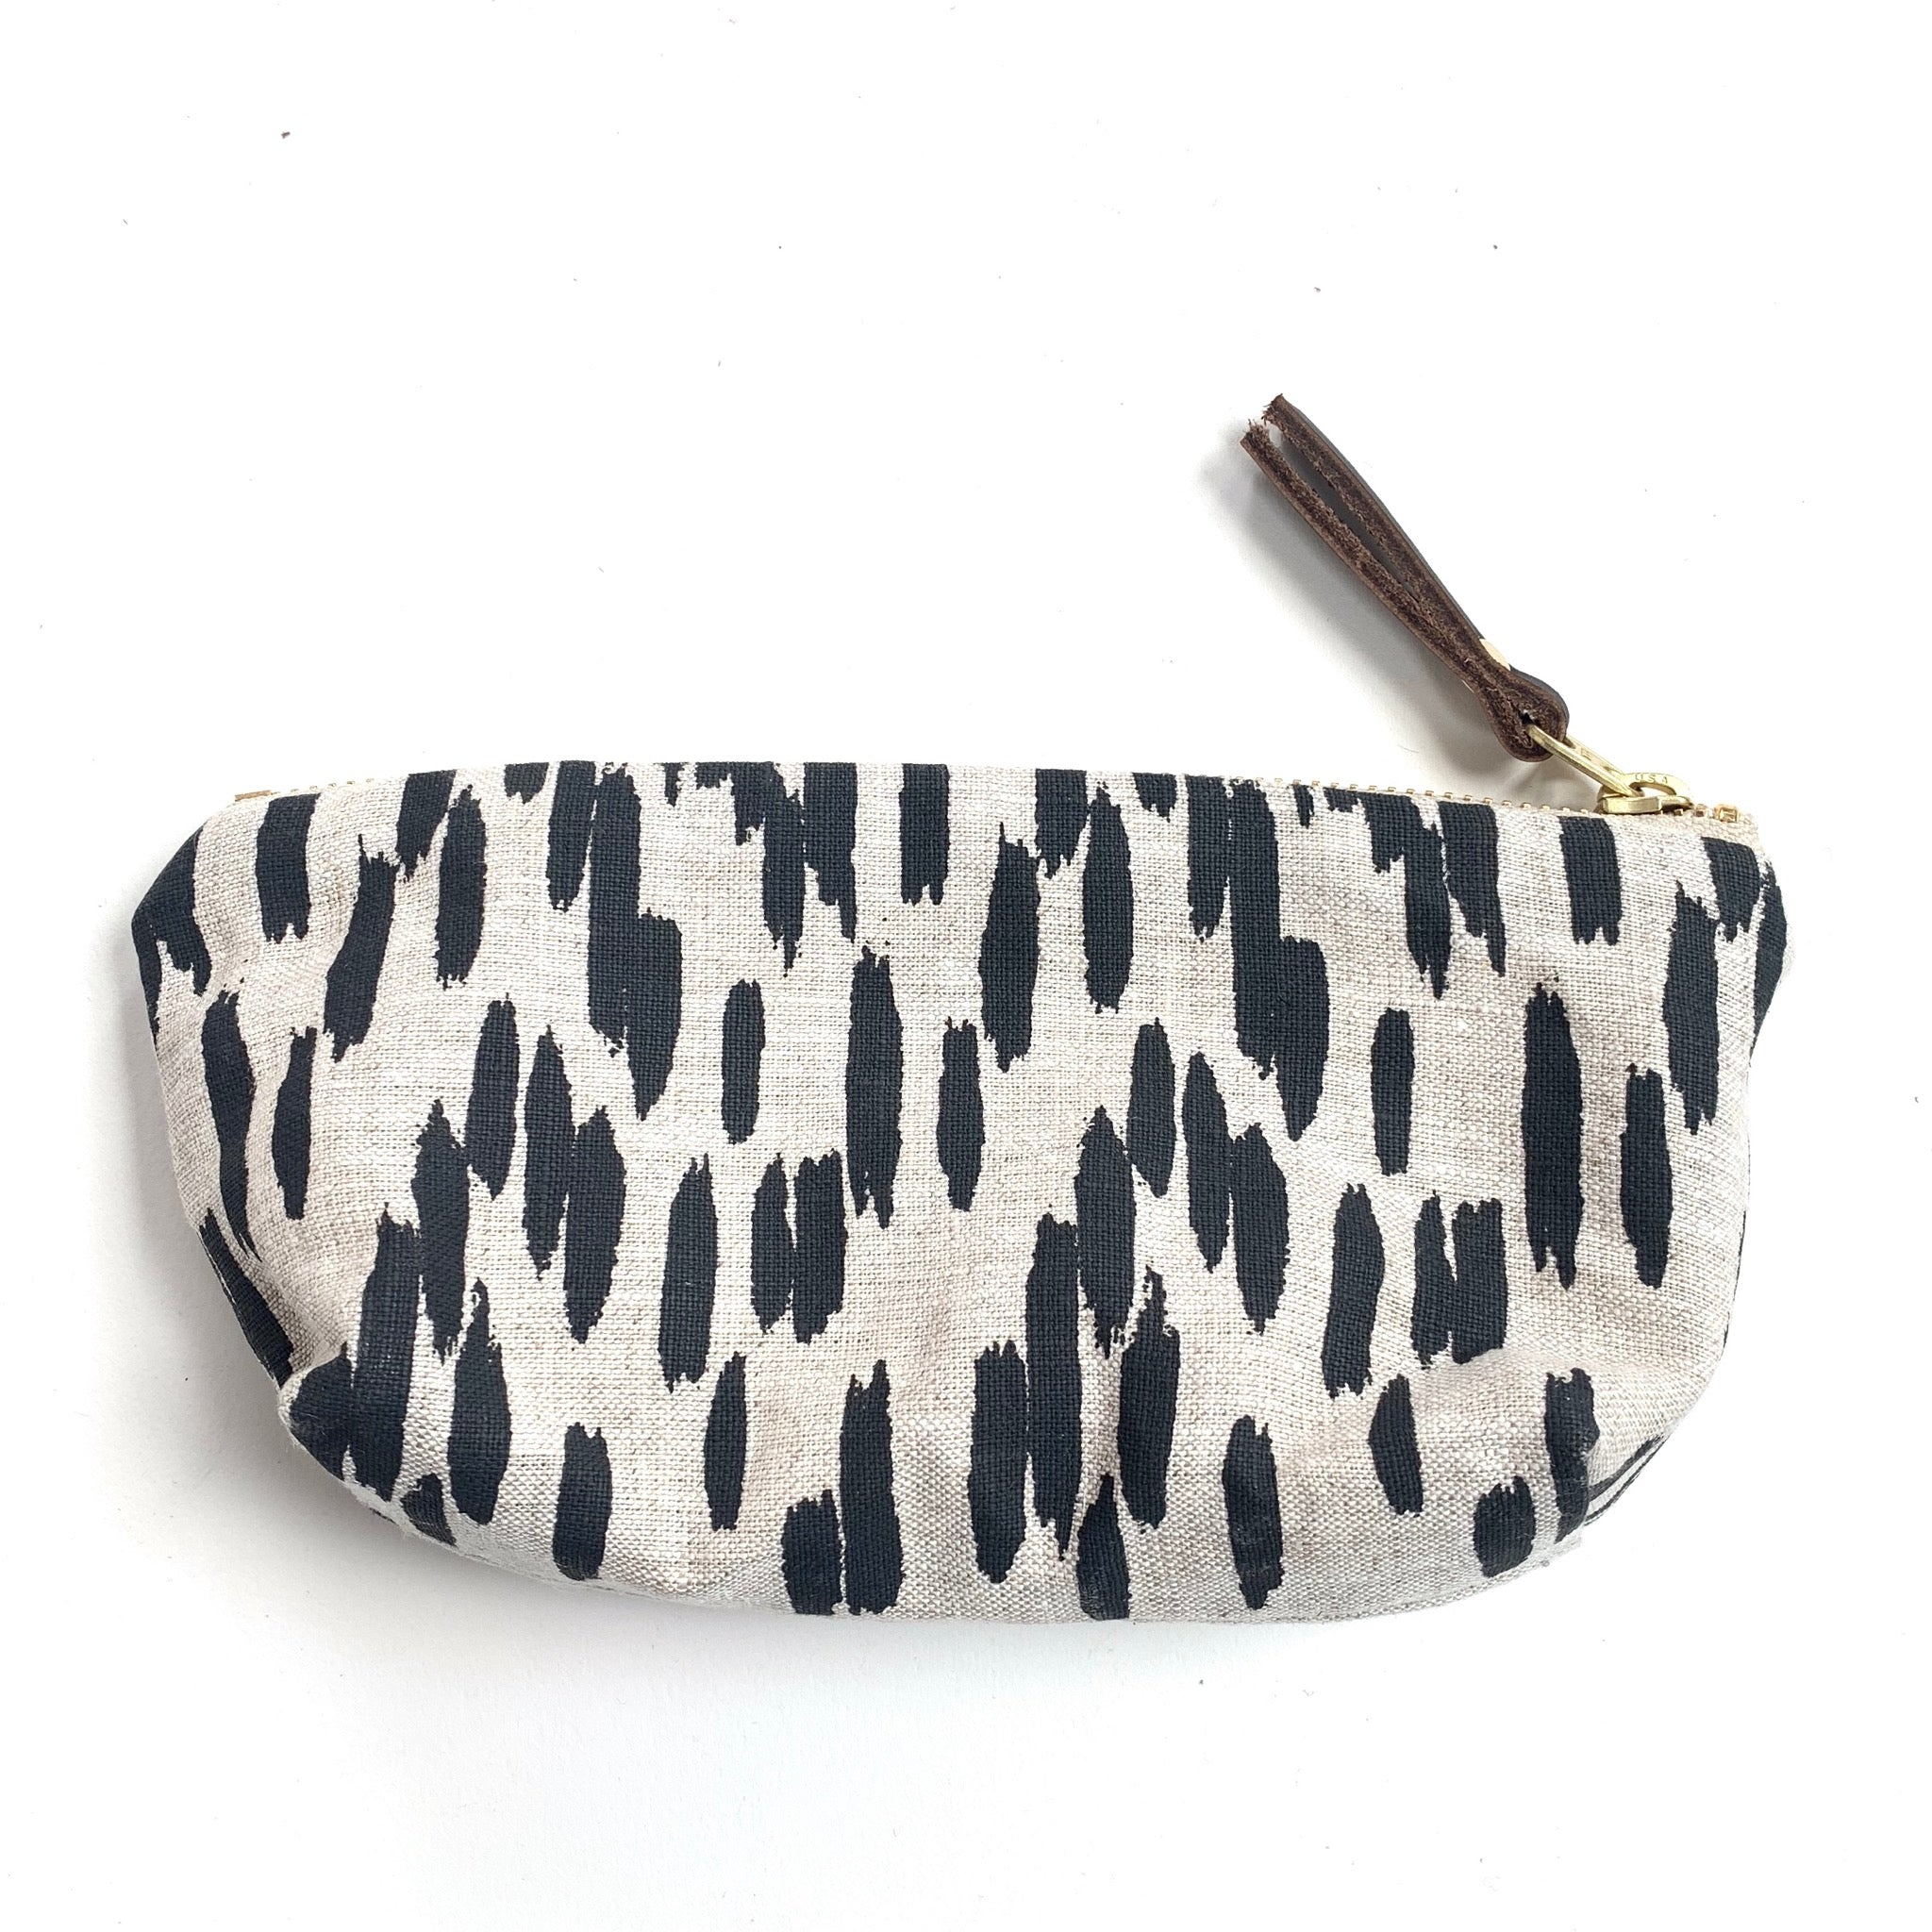 Made in Canada oblong linen pouch with black and white brushstroke pattern.